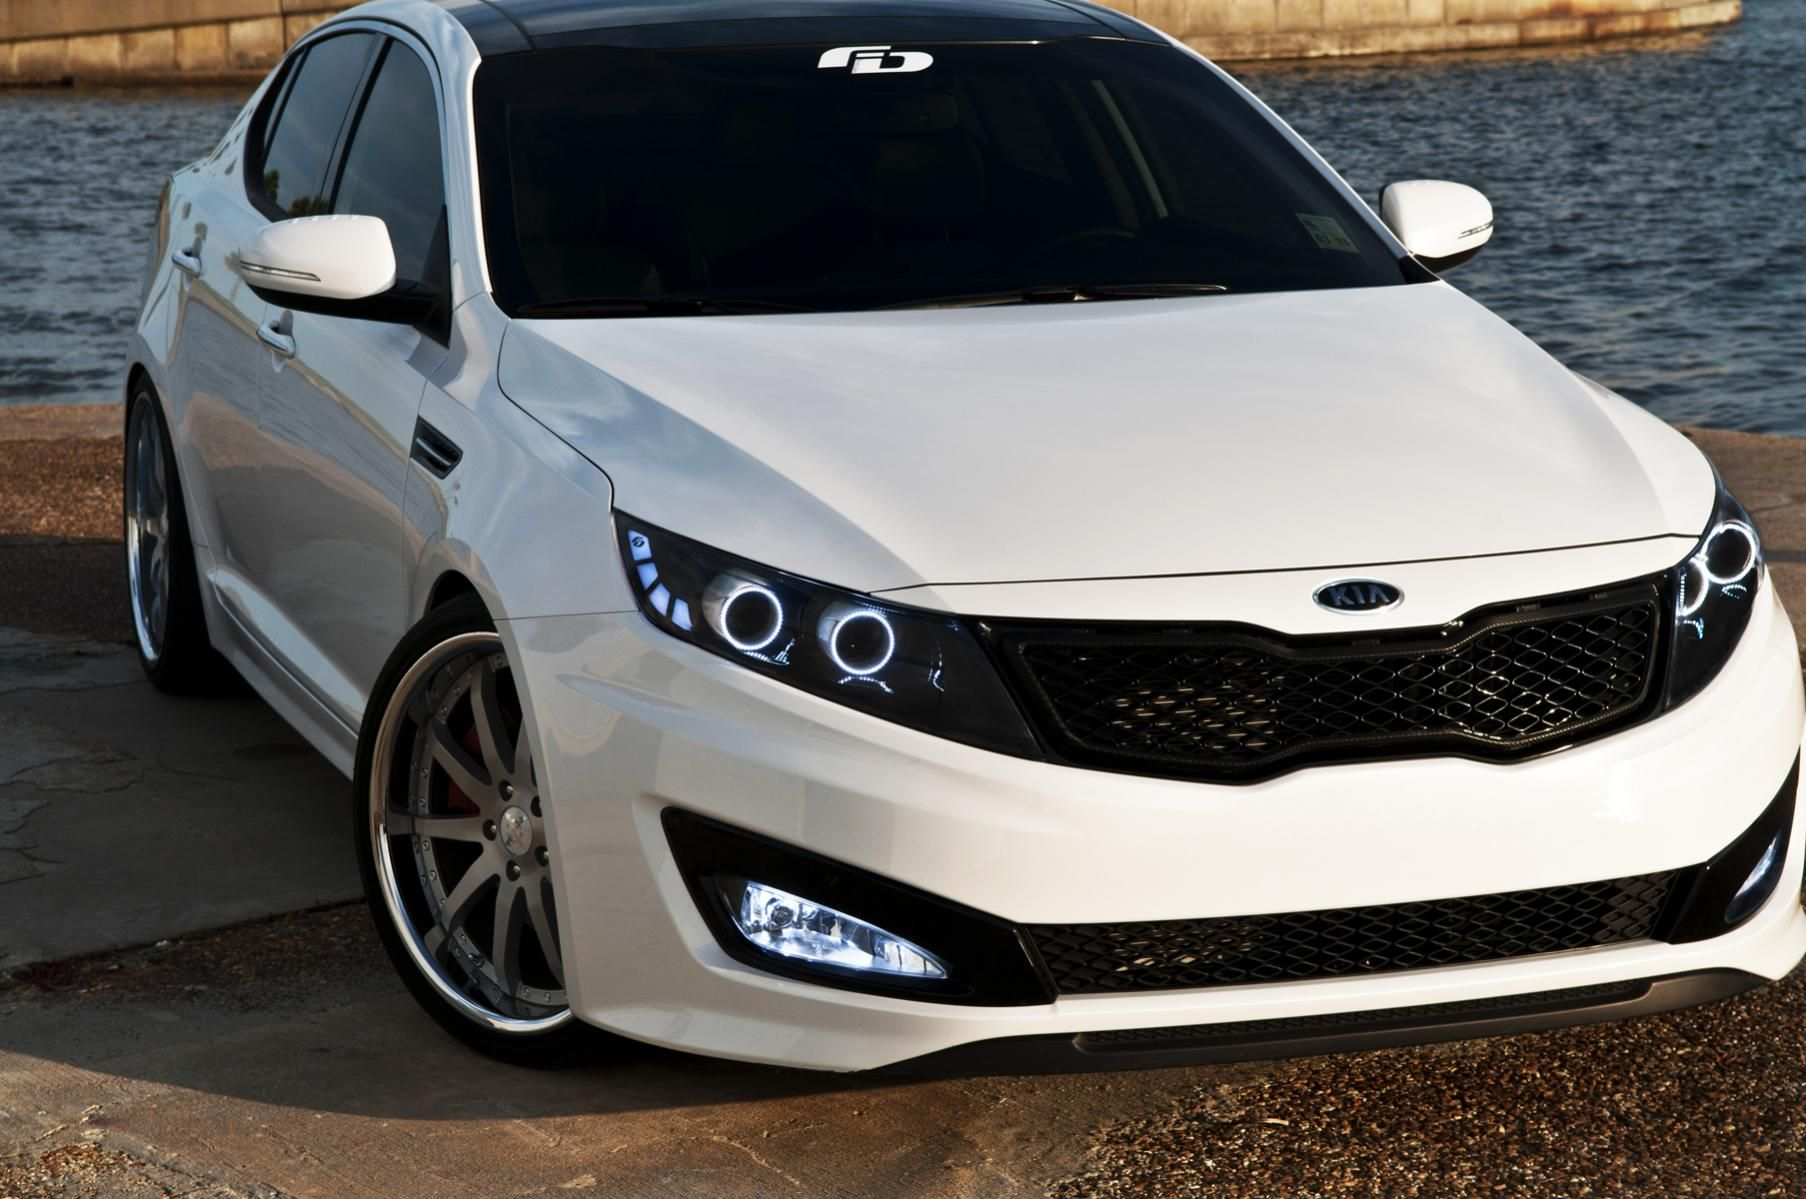 Fusion Design Headlights Want These On My Car Kia Optima Kia Kia Motors